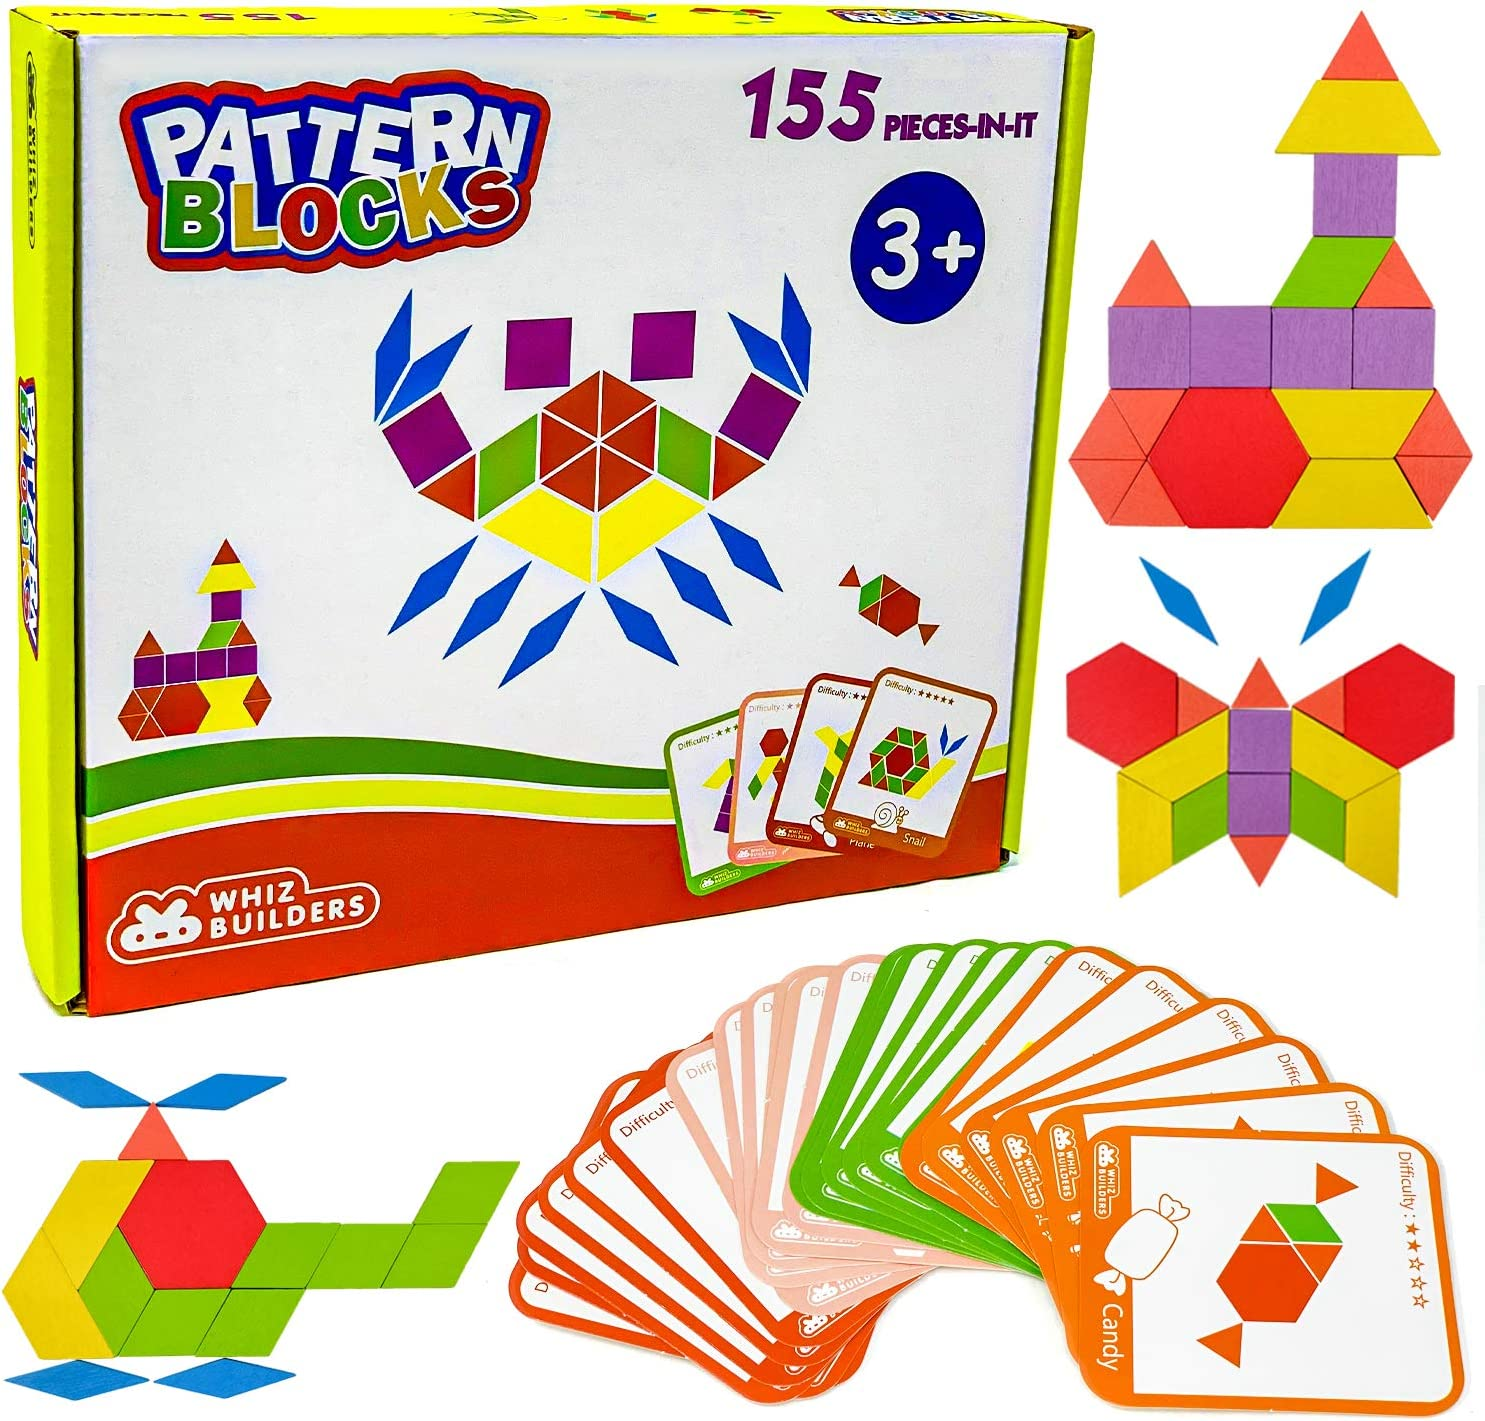 Wooden Max 69% OFF Pattern Blocks by WhizBuilders Dallas Mall Puzzle Tangram M Shape :